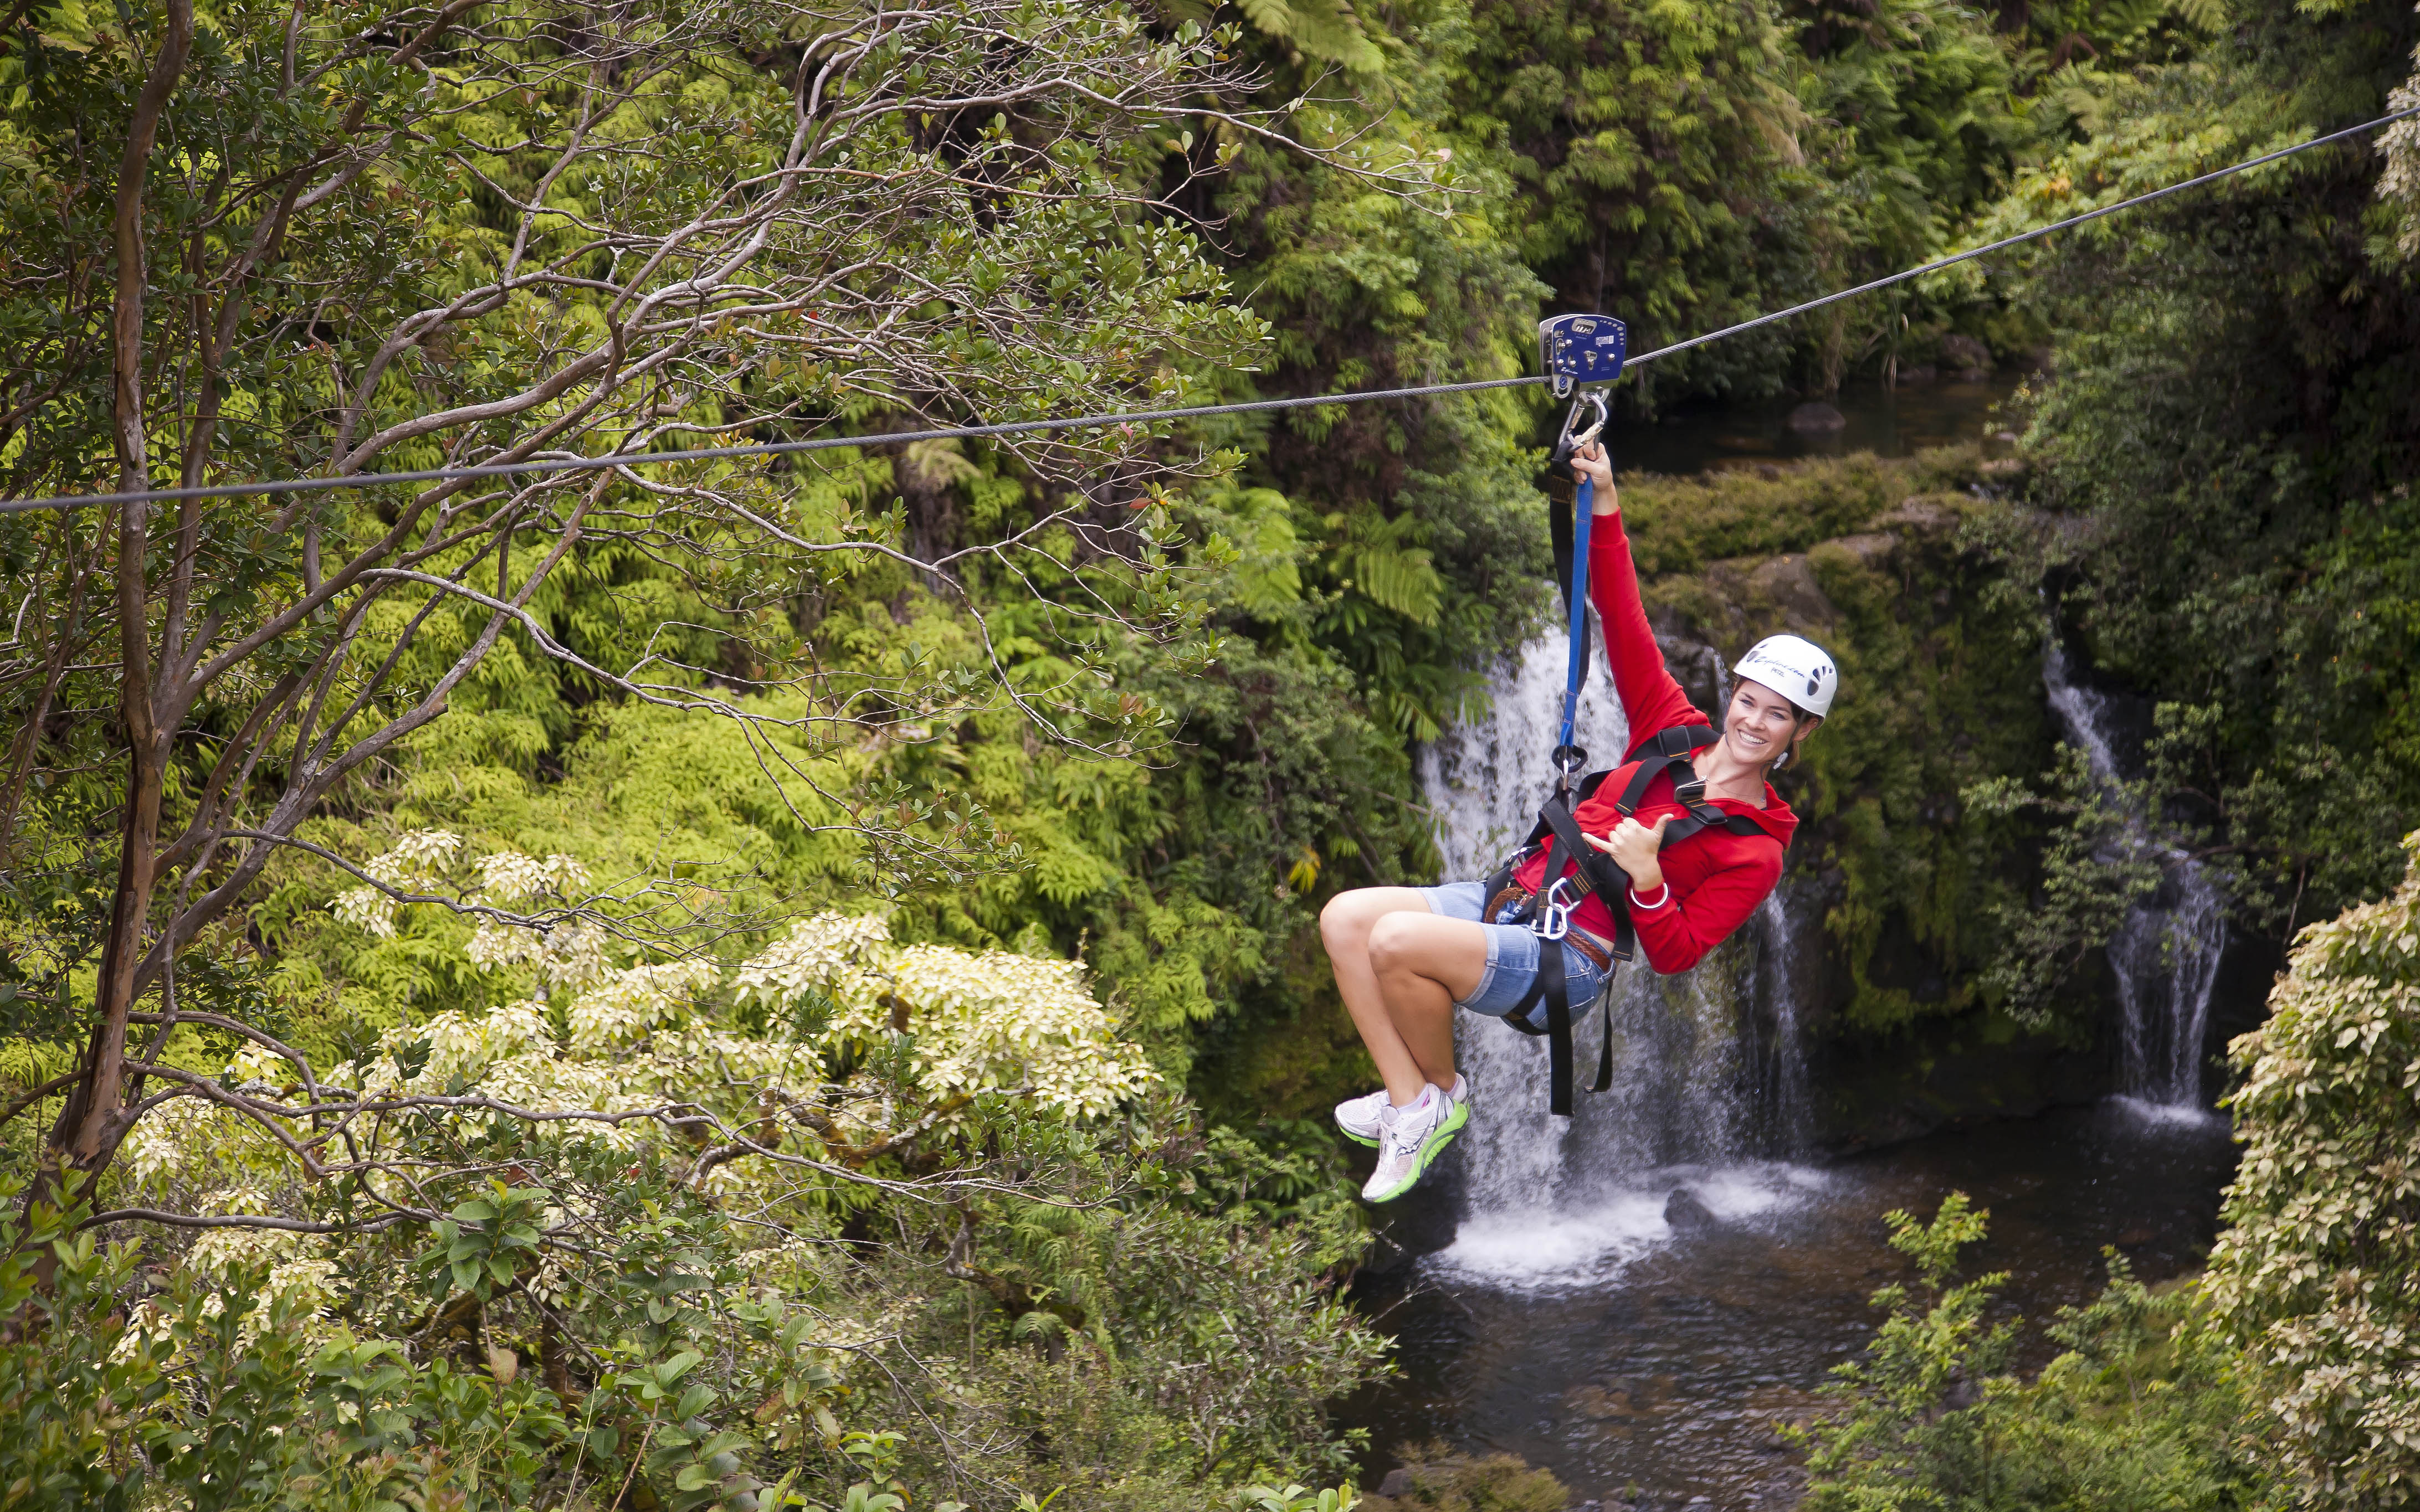 big island zipline tour in akaka falls hawaii zipline com